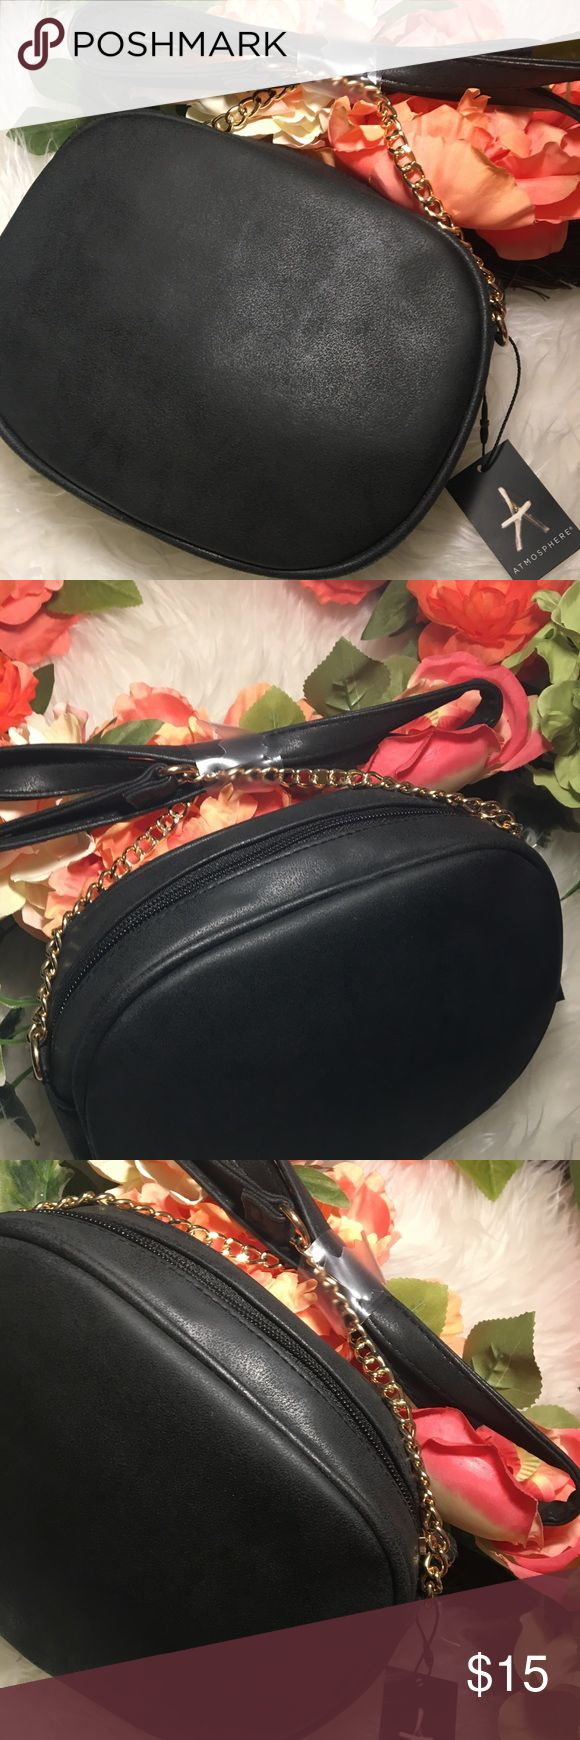 💋Beautiful Black CrossBody purse w/gold strap Primark purse: In style crossbody black purse. Gold color chain.. perfect for an everyday small purse. Brand  New, does not include SODA, just to show actual size. PRIMARK Bags Crossbody Bags